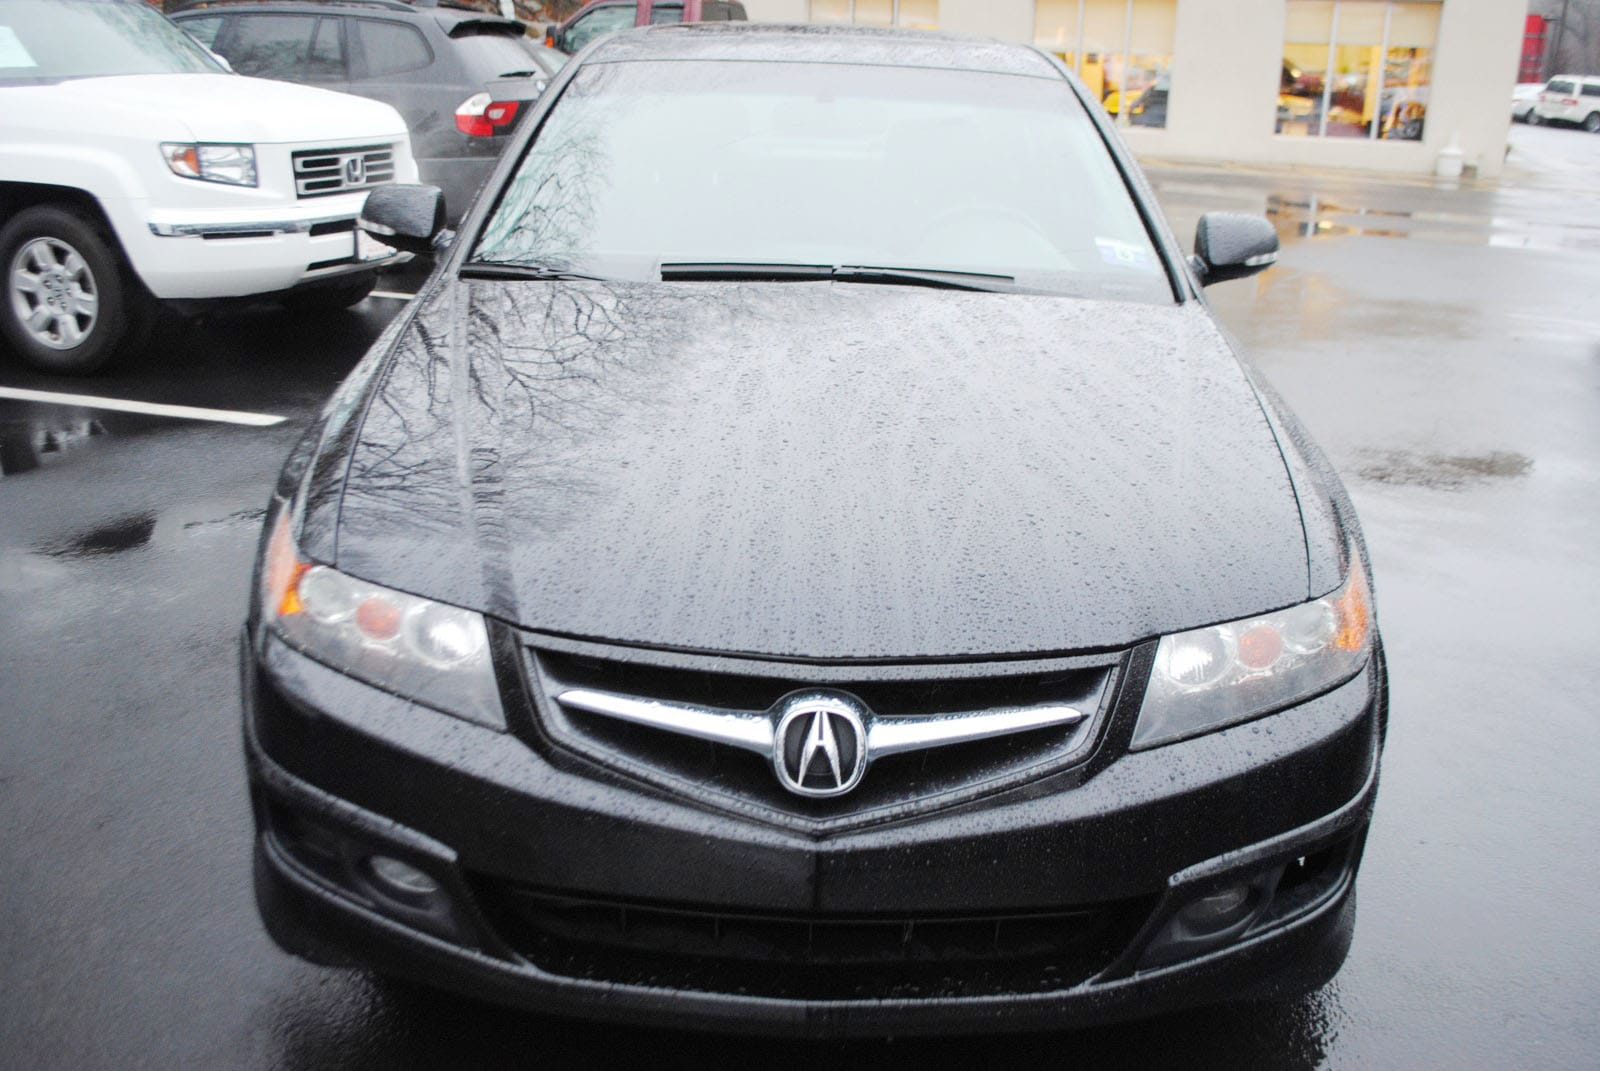 used 2008 acura tsx for sale west milford nj rh ramseycorp com 2009 Acura TSX Manual 2009 Acura TSX Manual